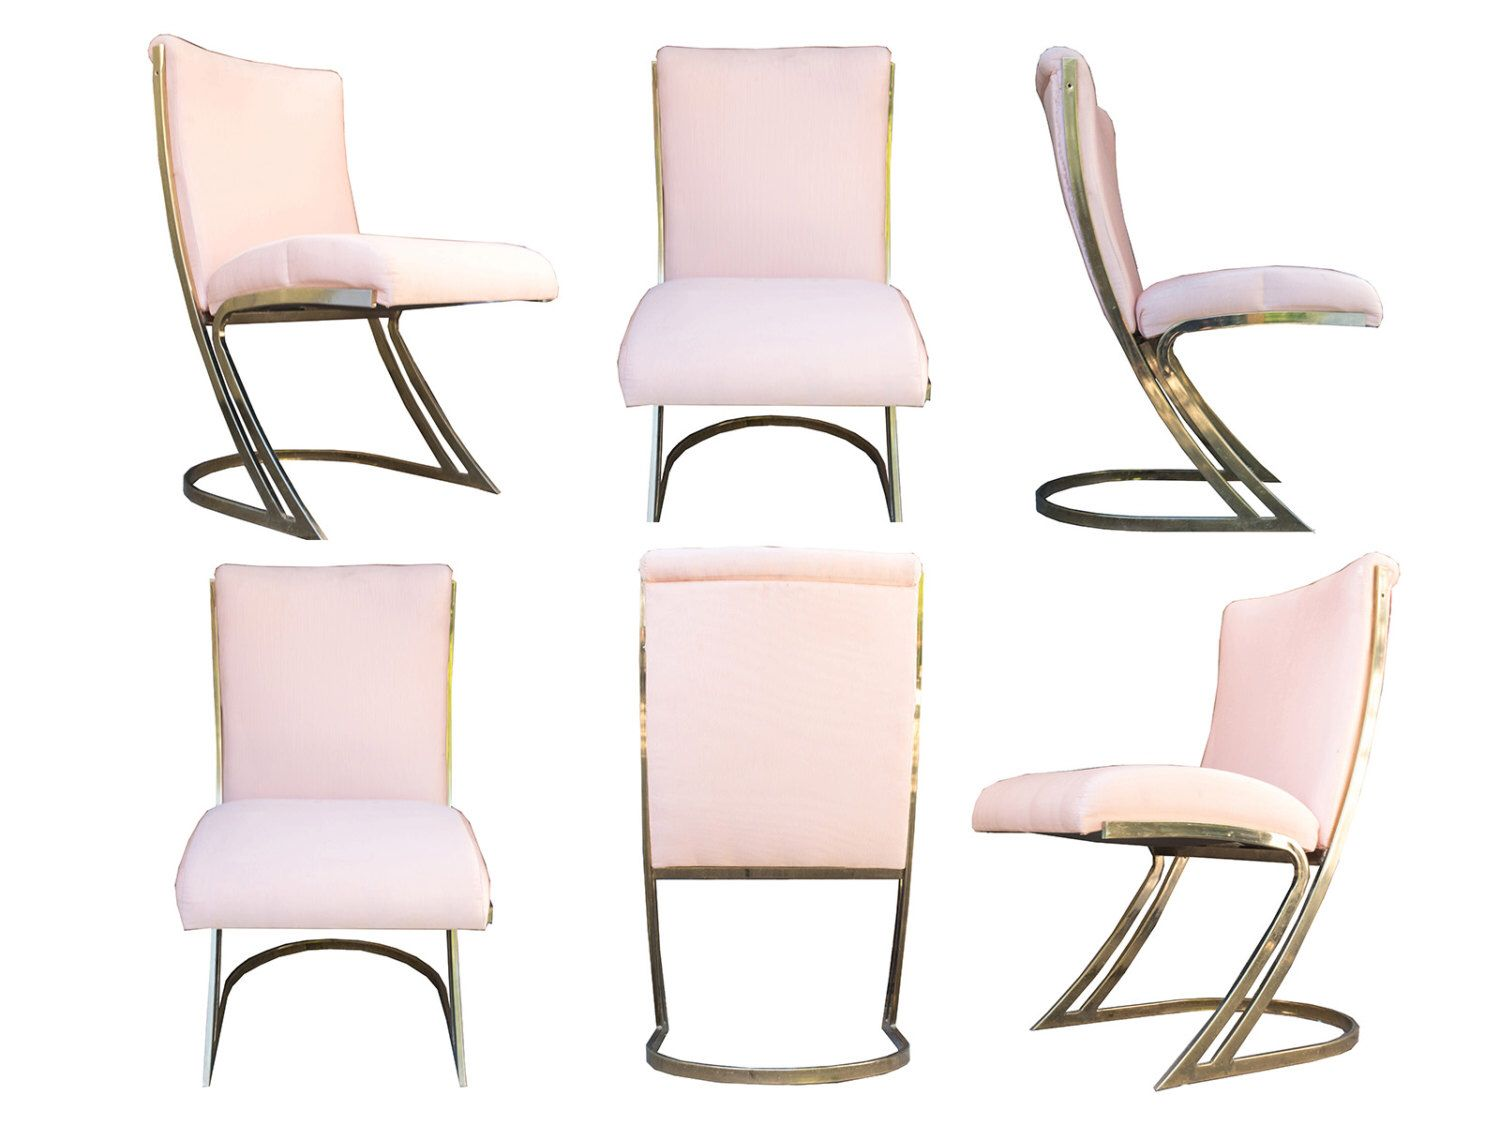 Sculptural Pierre Cardin Style Brass Z Chairs, S/6 by SUTTONCHAO on Etsy https://www.etsy.com/listing/269394894/sculptural-pierre-cardin-style-brass-z